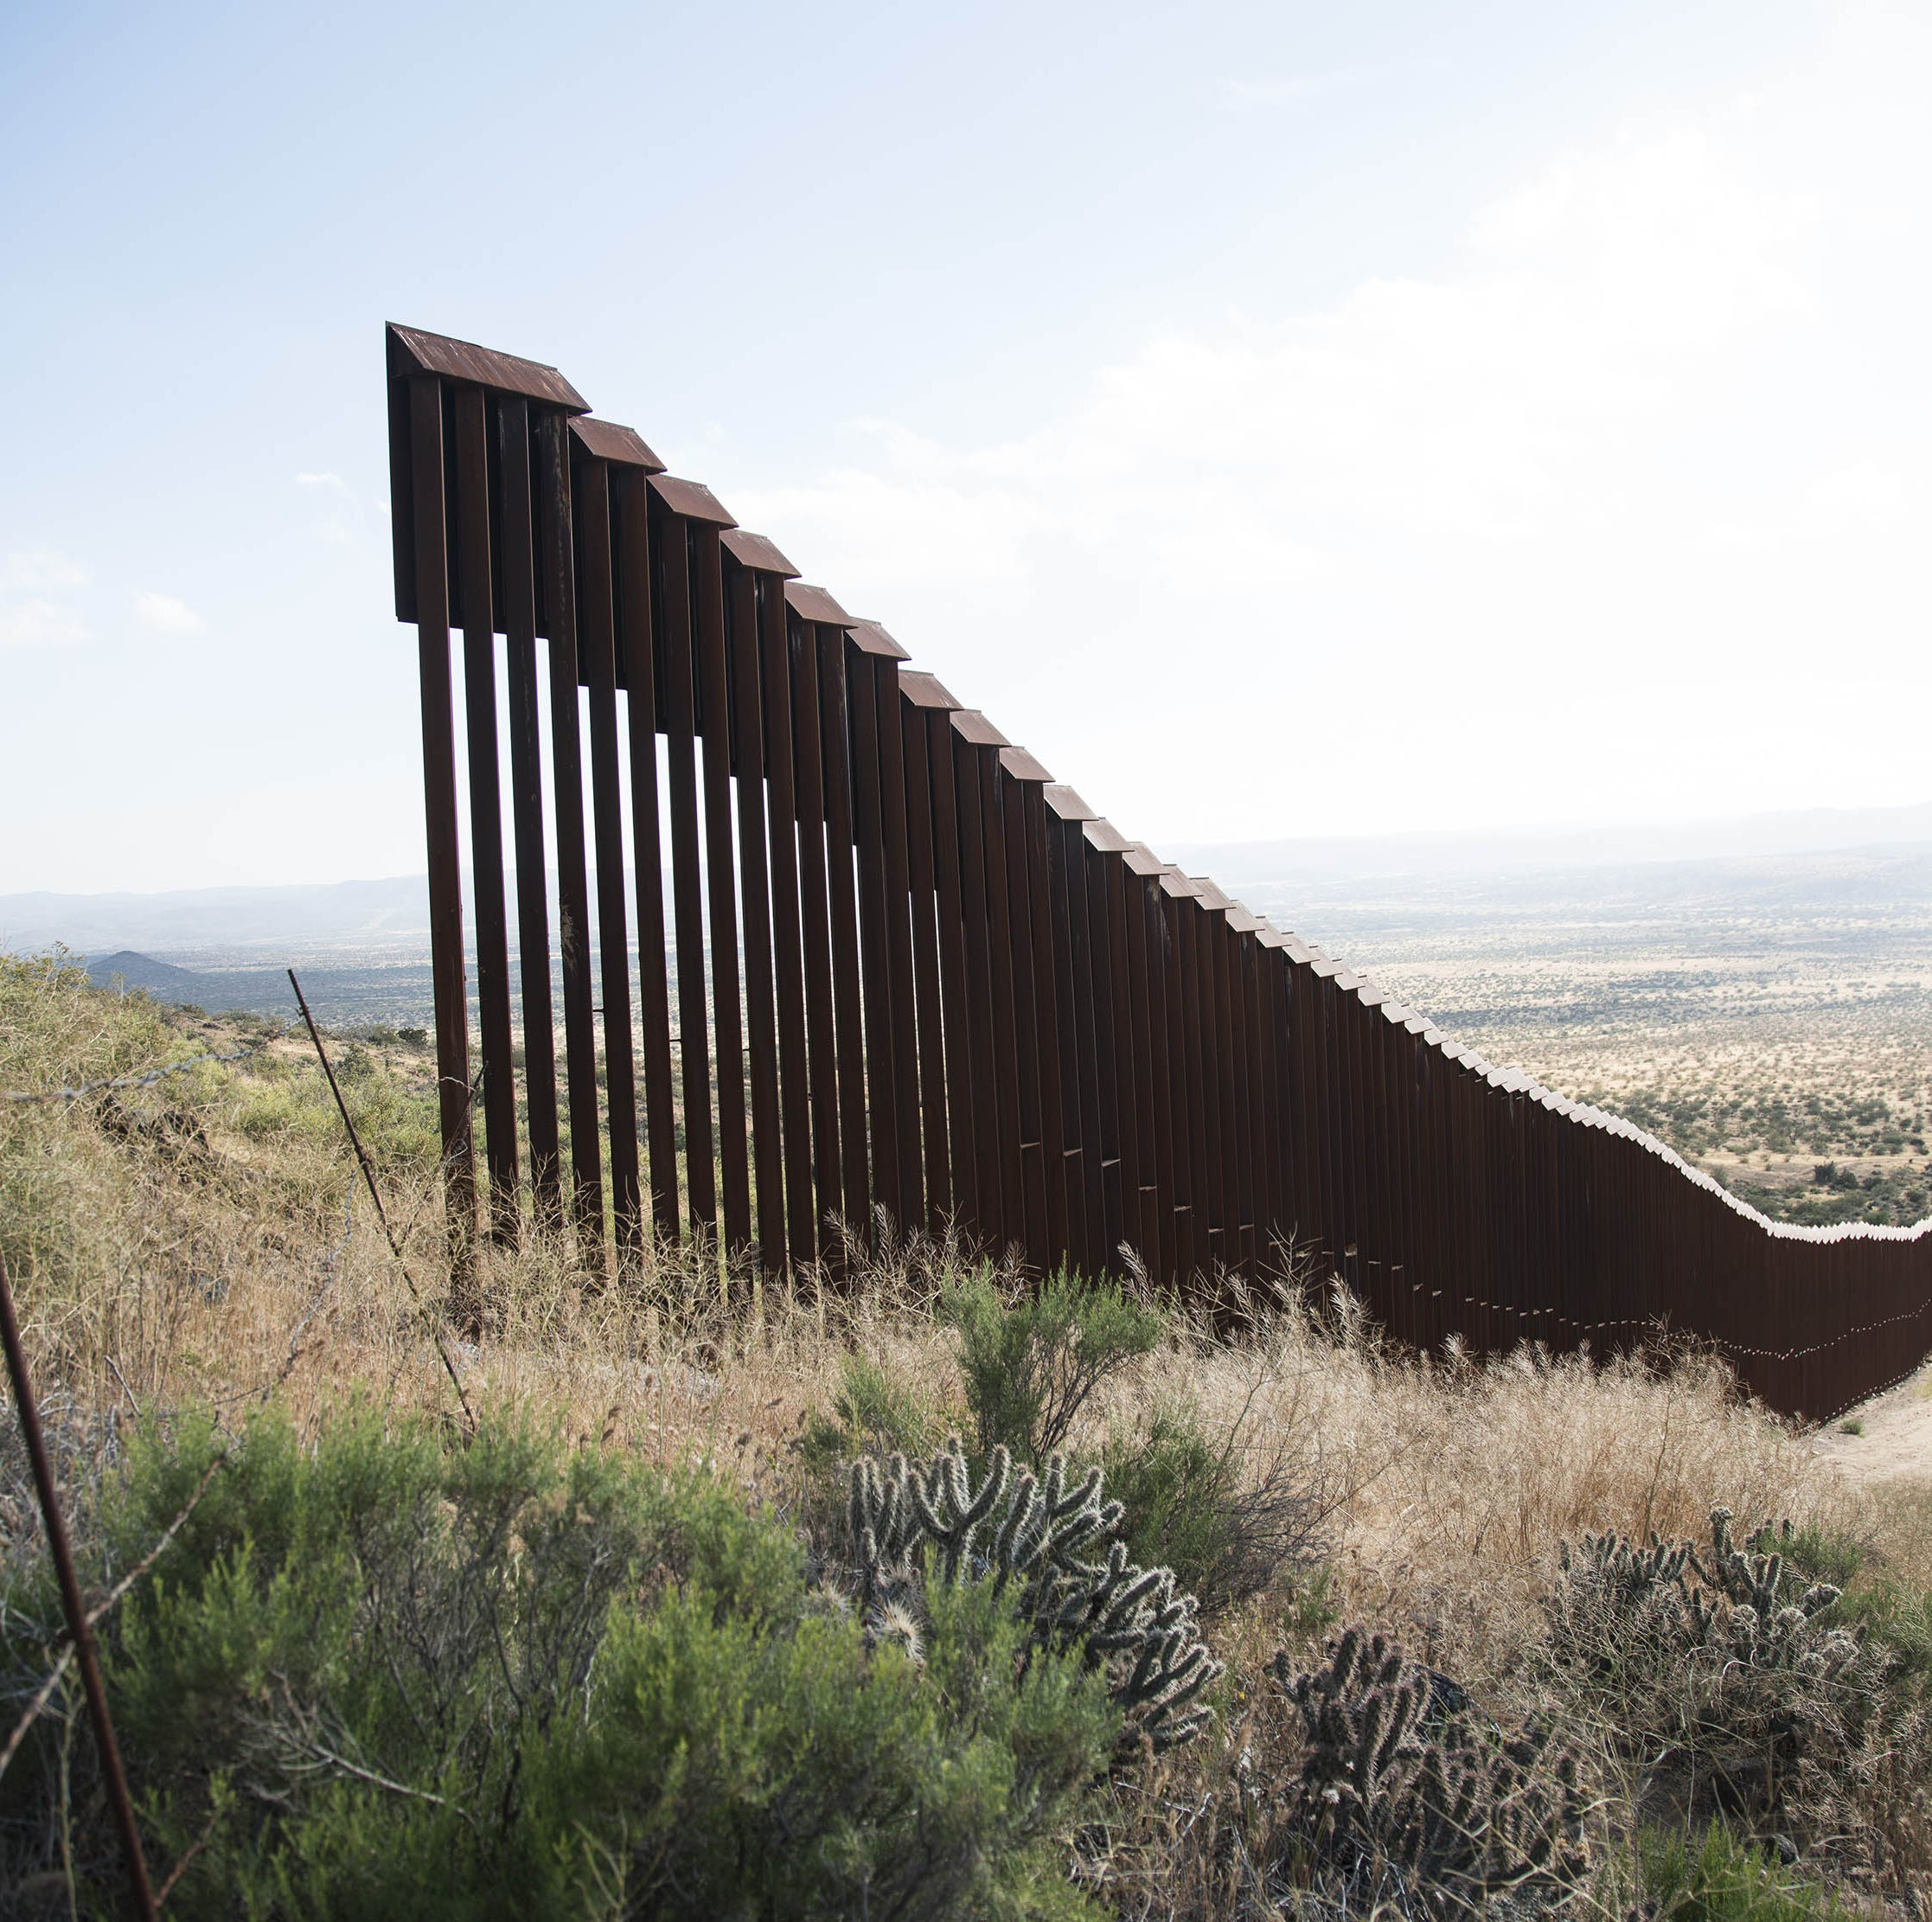 Opinion: Trump can get his wall — without a shutdown, national emergency